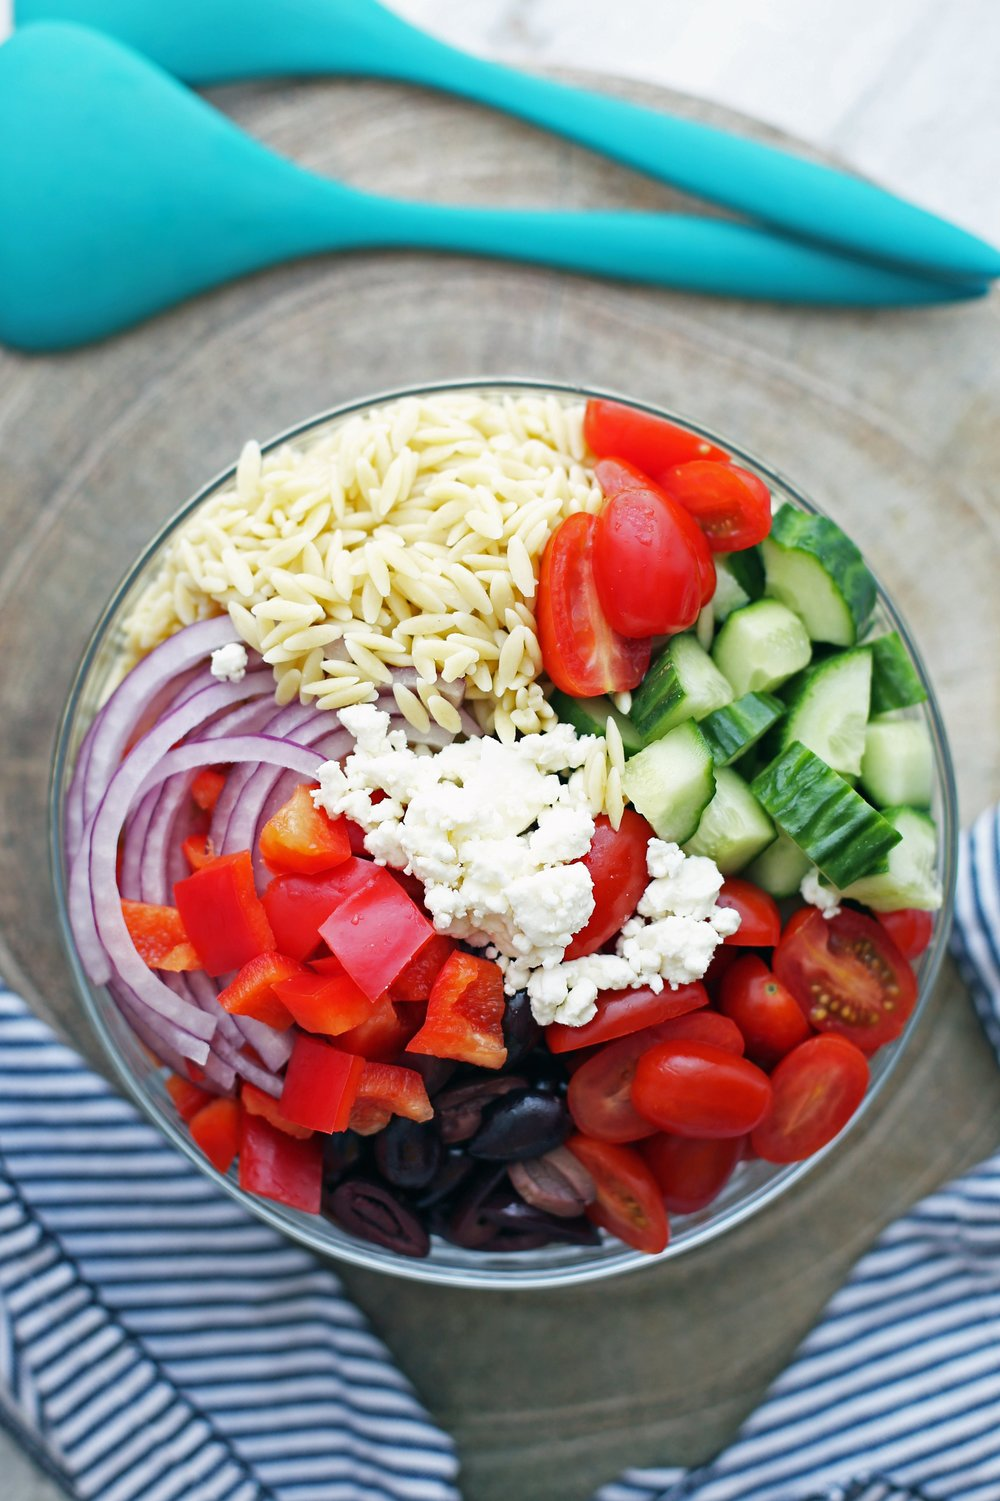 A large glass bowl containing orzo pasta, feta cheese, sliced red onions, and chopped tomatoes, olives, cucumber, and bell pepper.